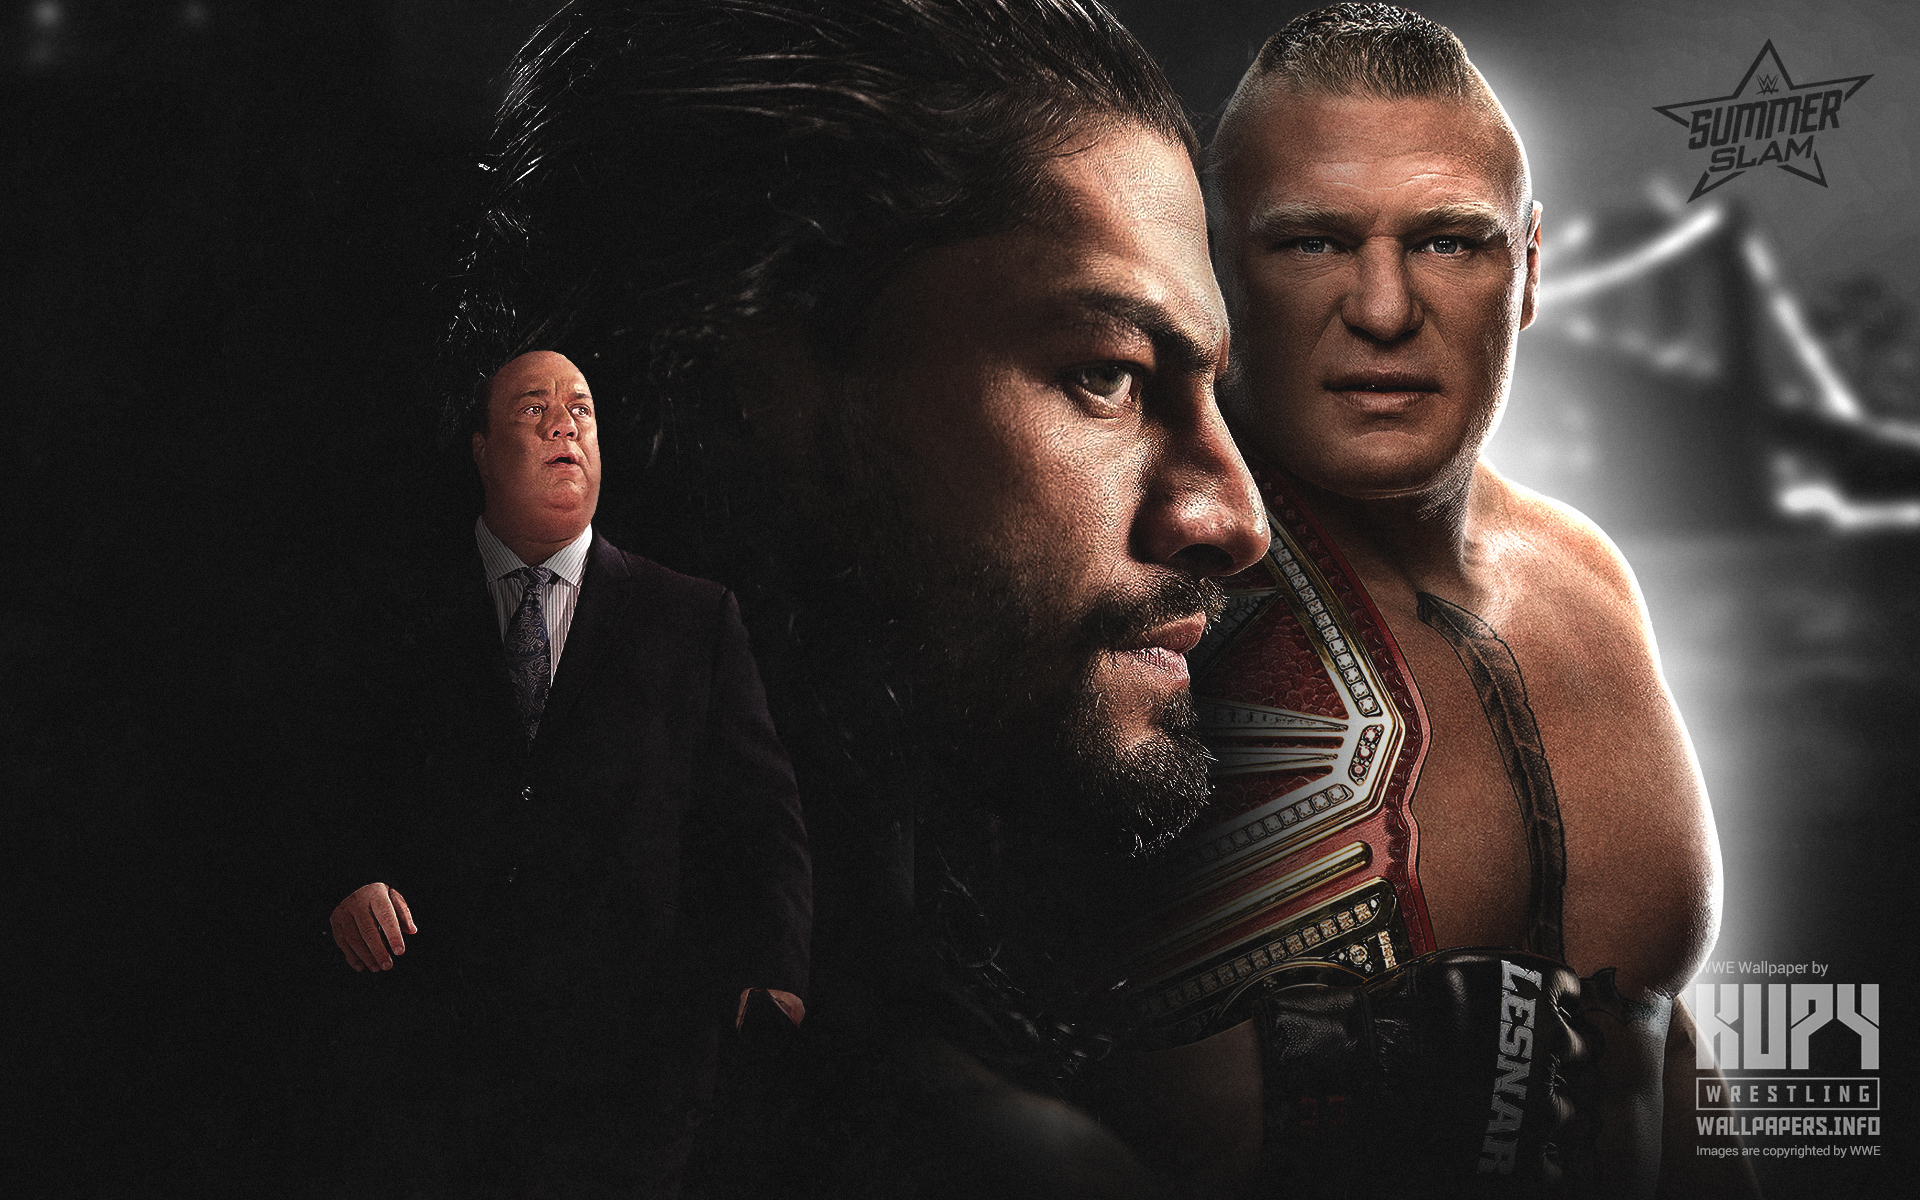 kupy wrestling wallpapers the latest source for your wwe wrestling wallpaper needs mobile hd and 4k resolutions available blog archive 2018 summerslam finale roman reigns vs brock lesnar wallpaper roman reigns vs brock lesnar wallpaper